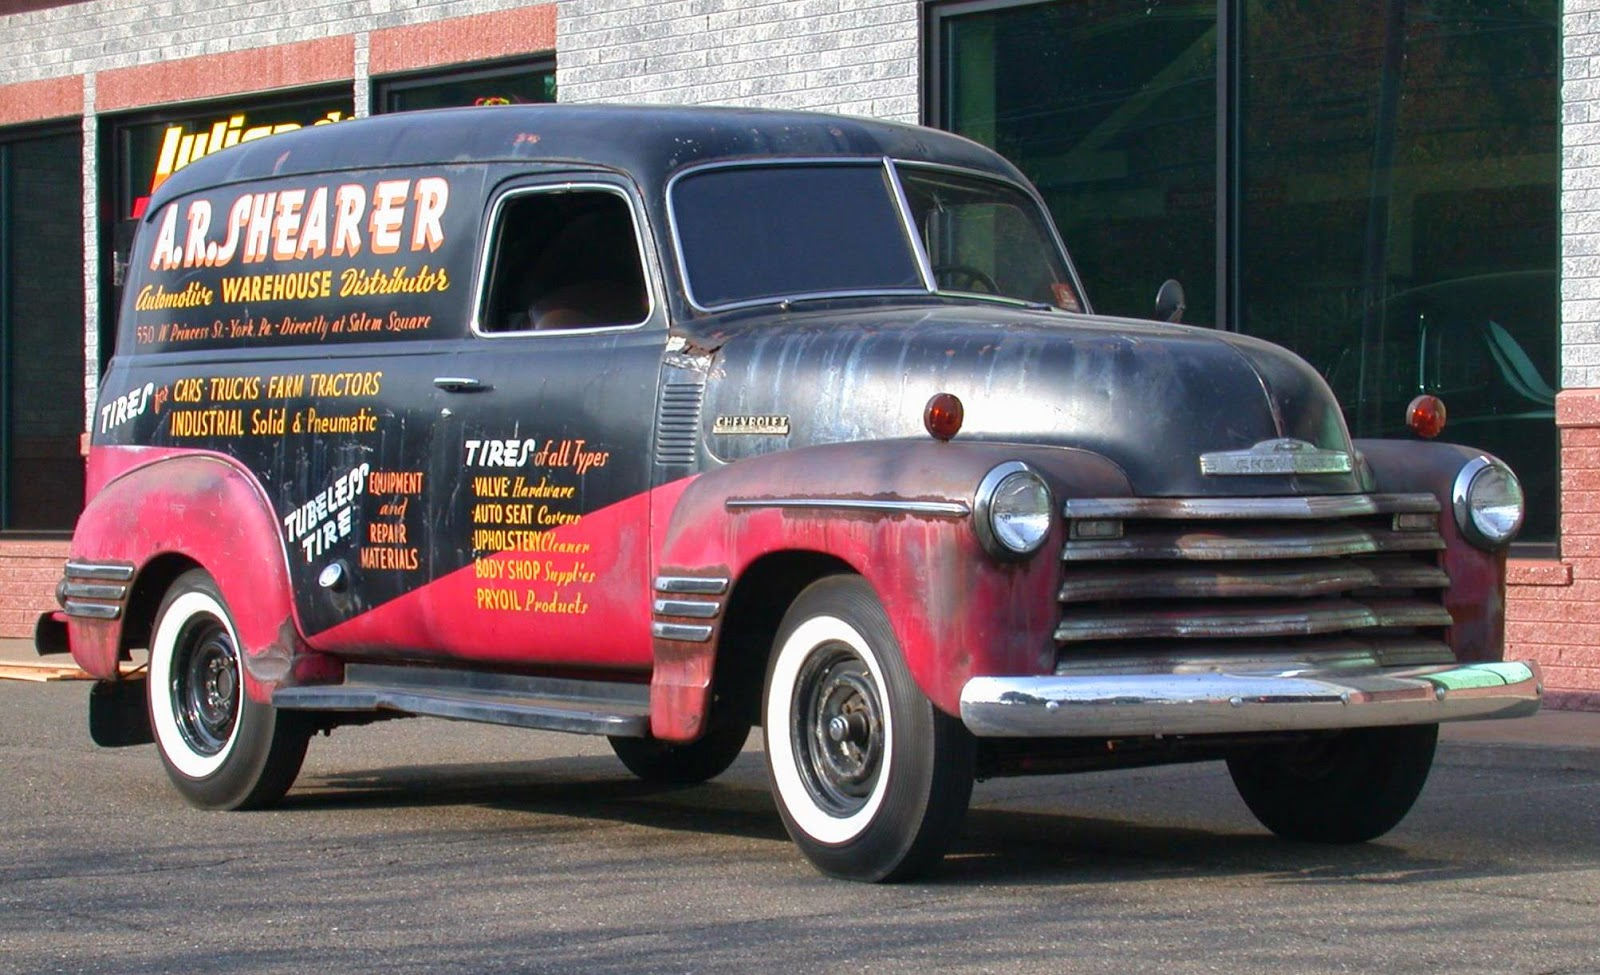 Truck 1949 chevy panel truck : Nostalgia on Wheels: A.R. Shearer Automotive Distributor Chevy ...